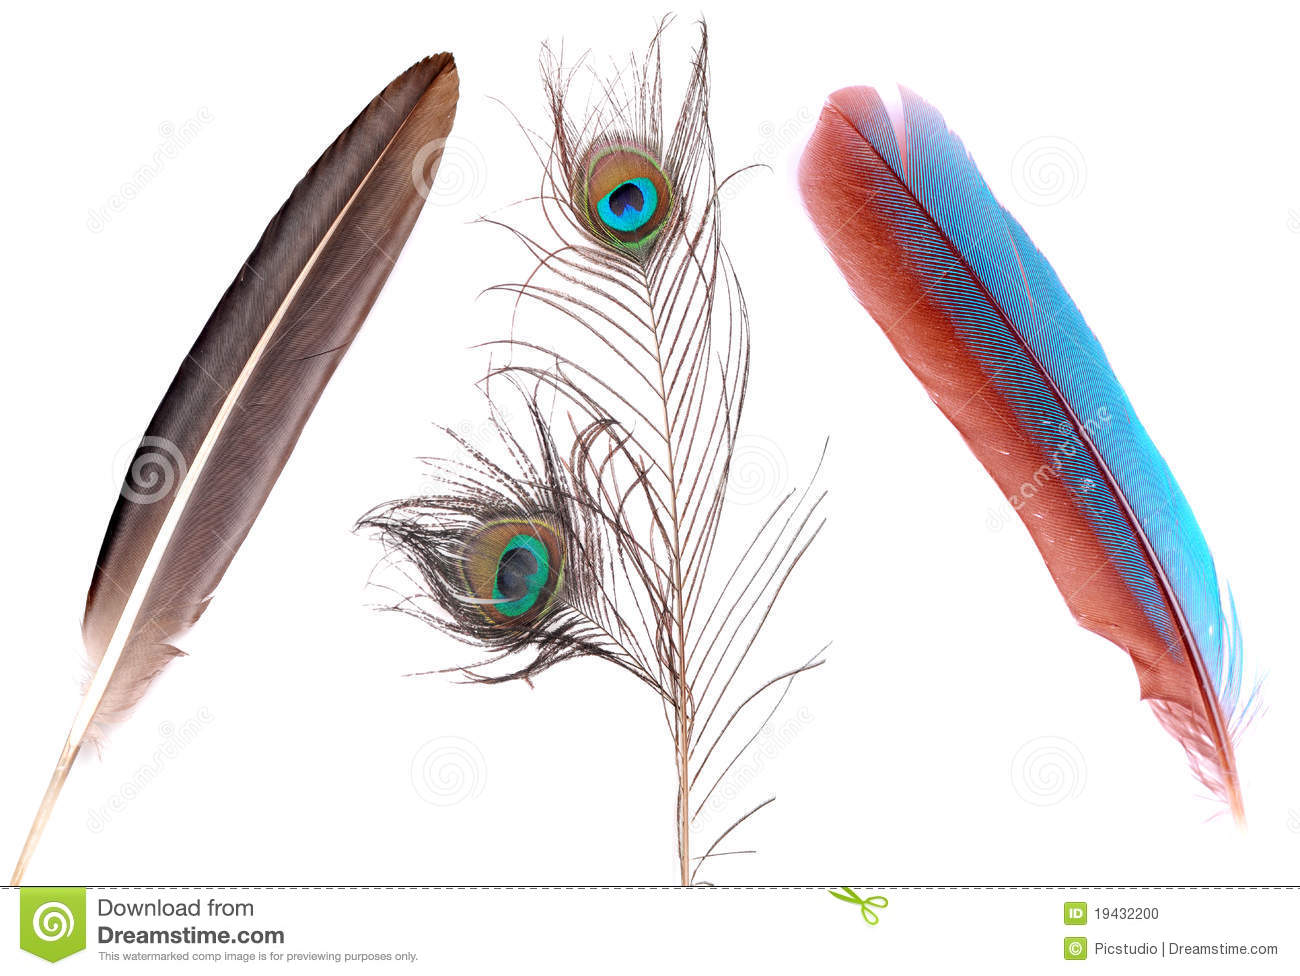 Different bird feathers - photo#6